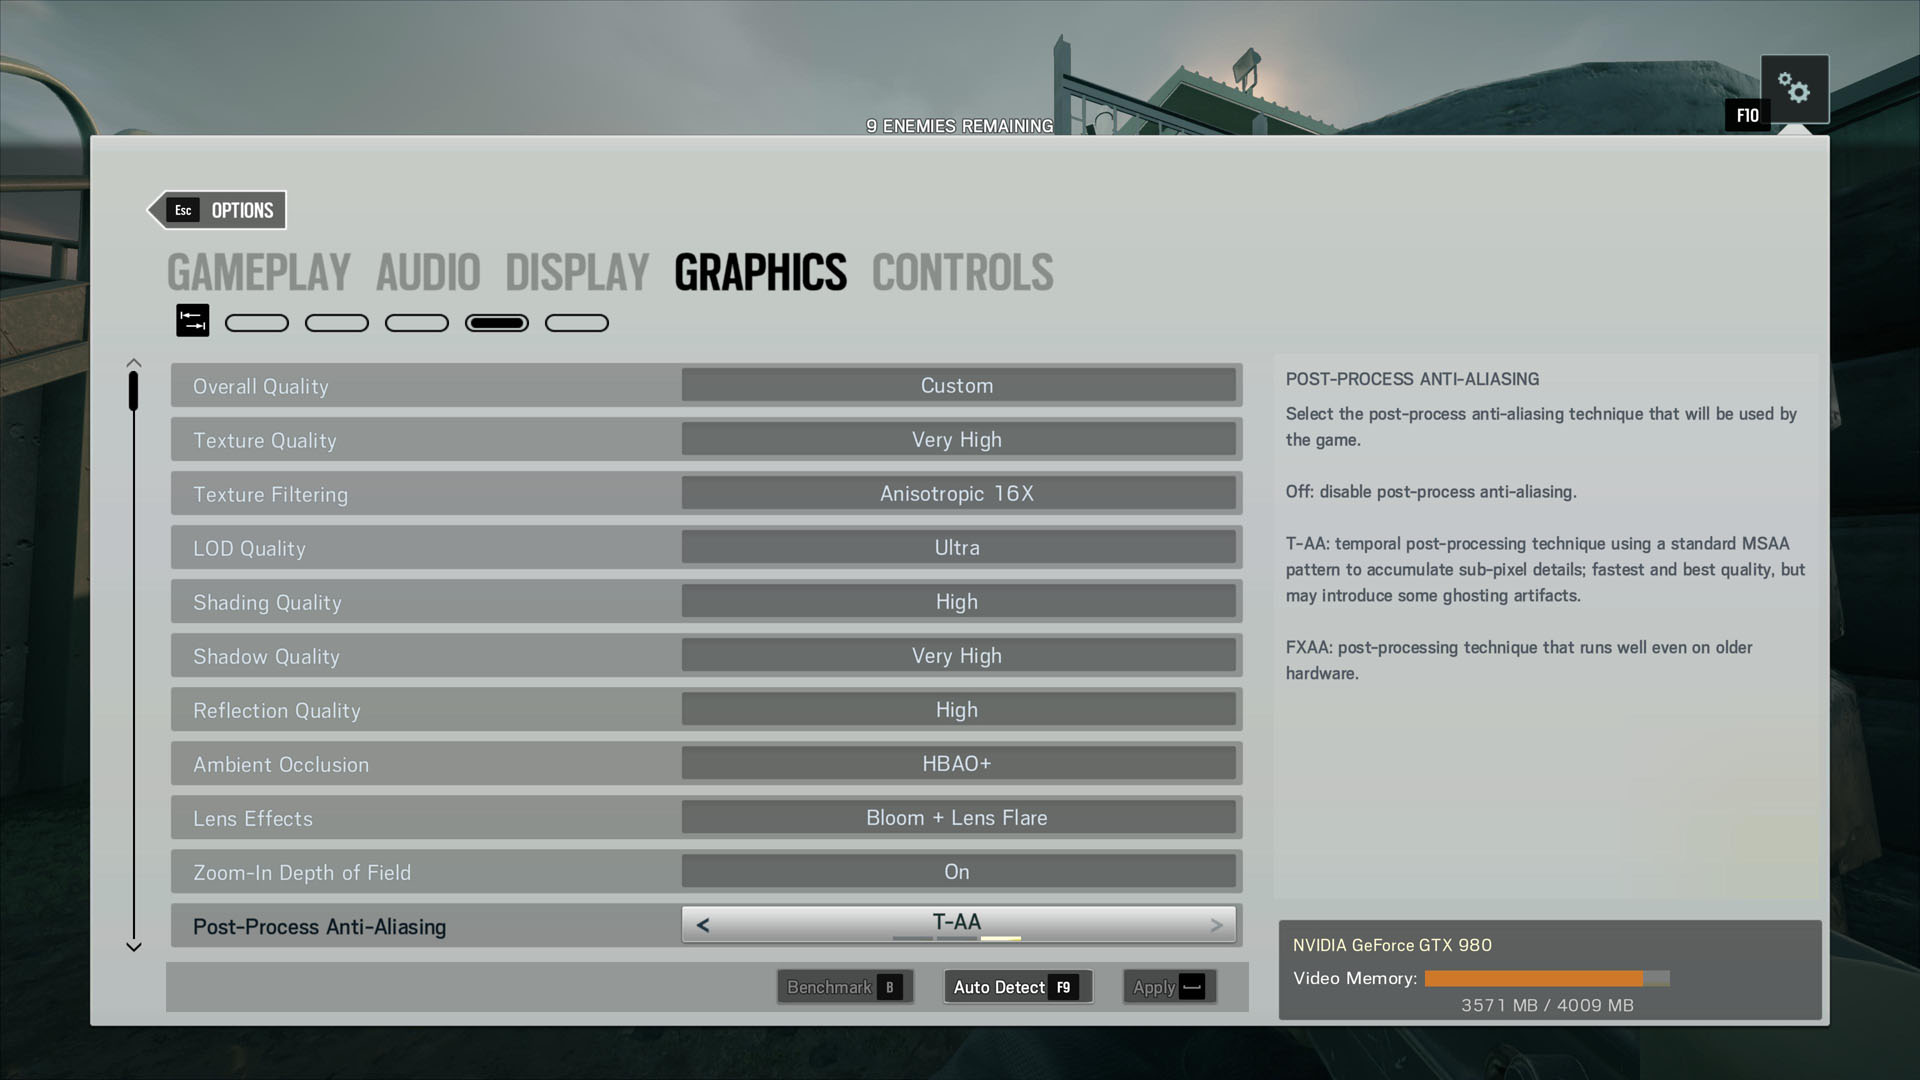 Driver Performance Analysis Featuring JC 3, AC Syndicate